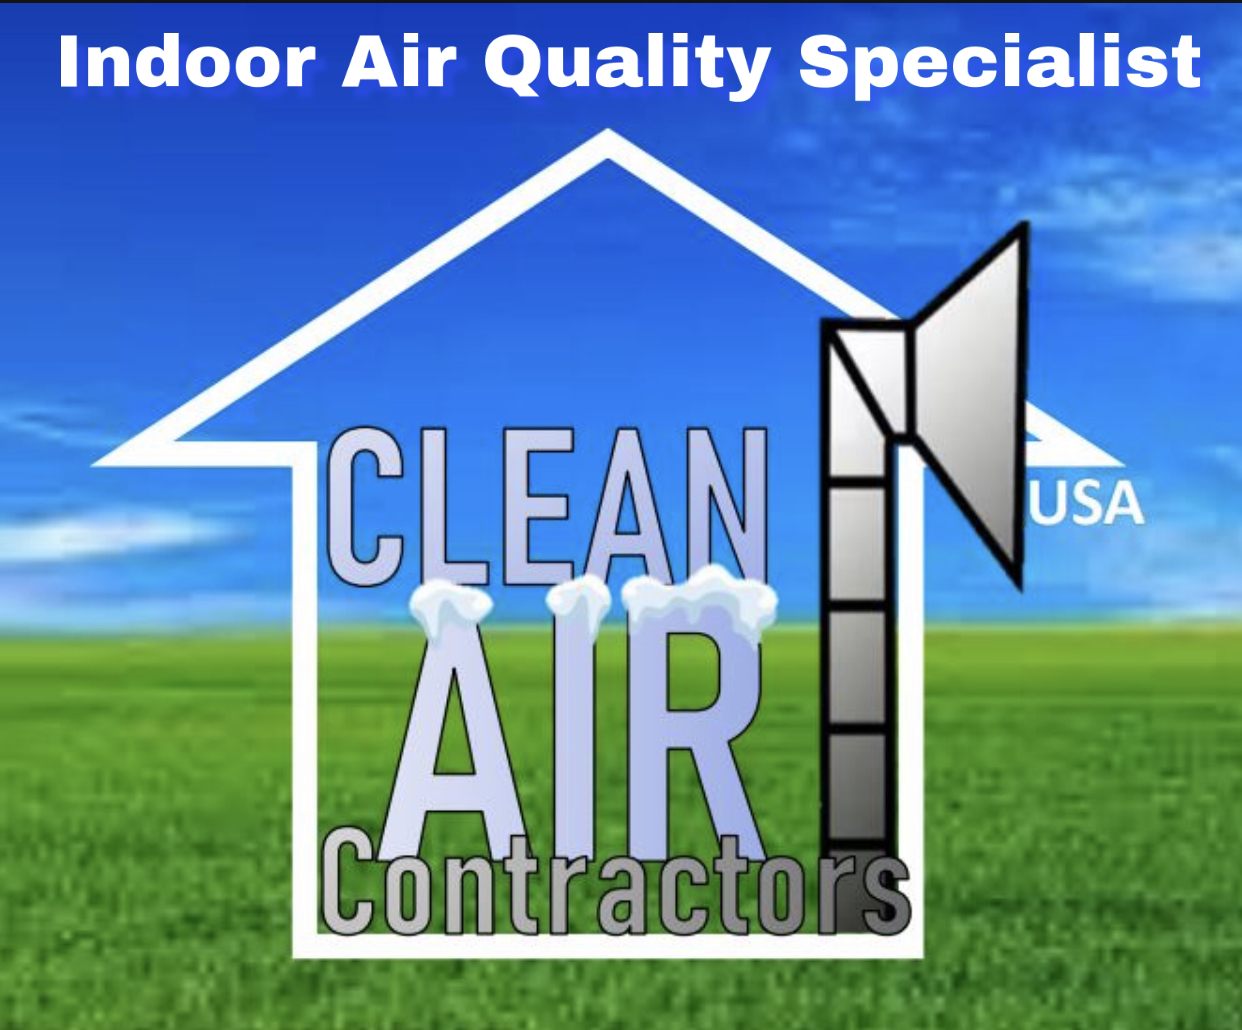 CleanAir Contractors USA